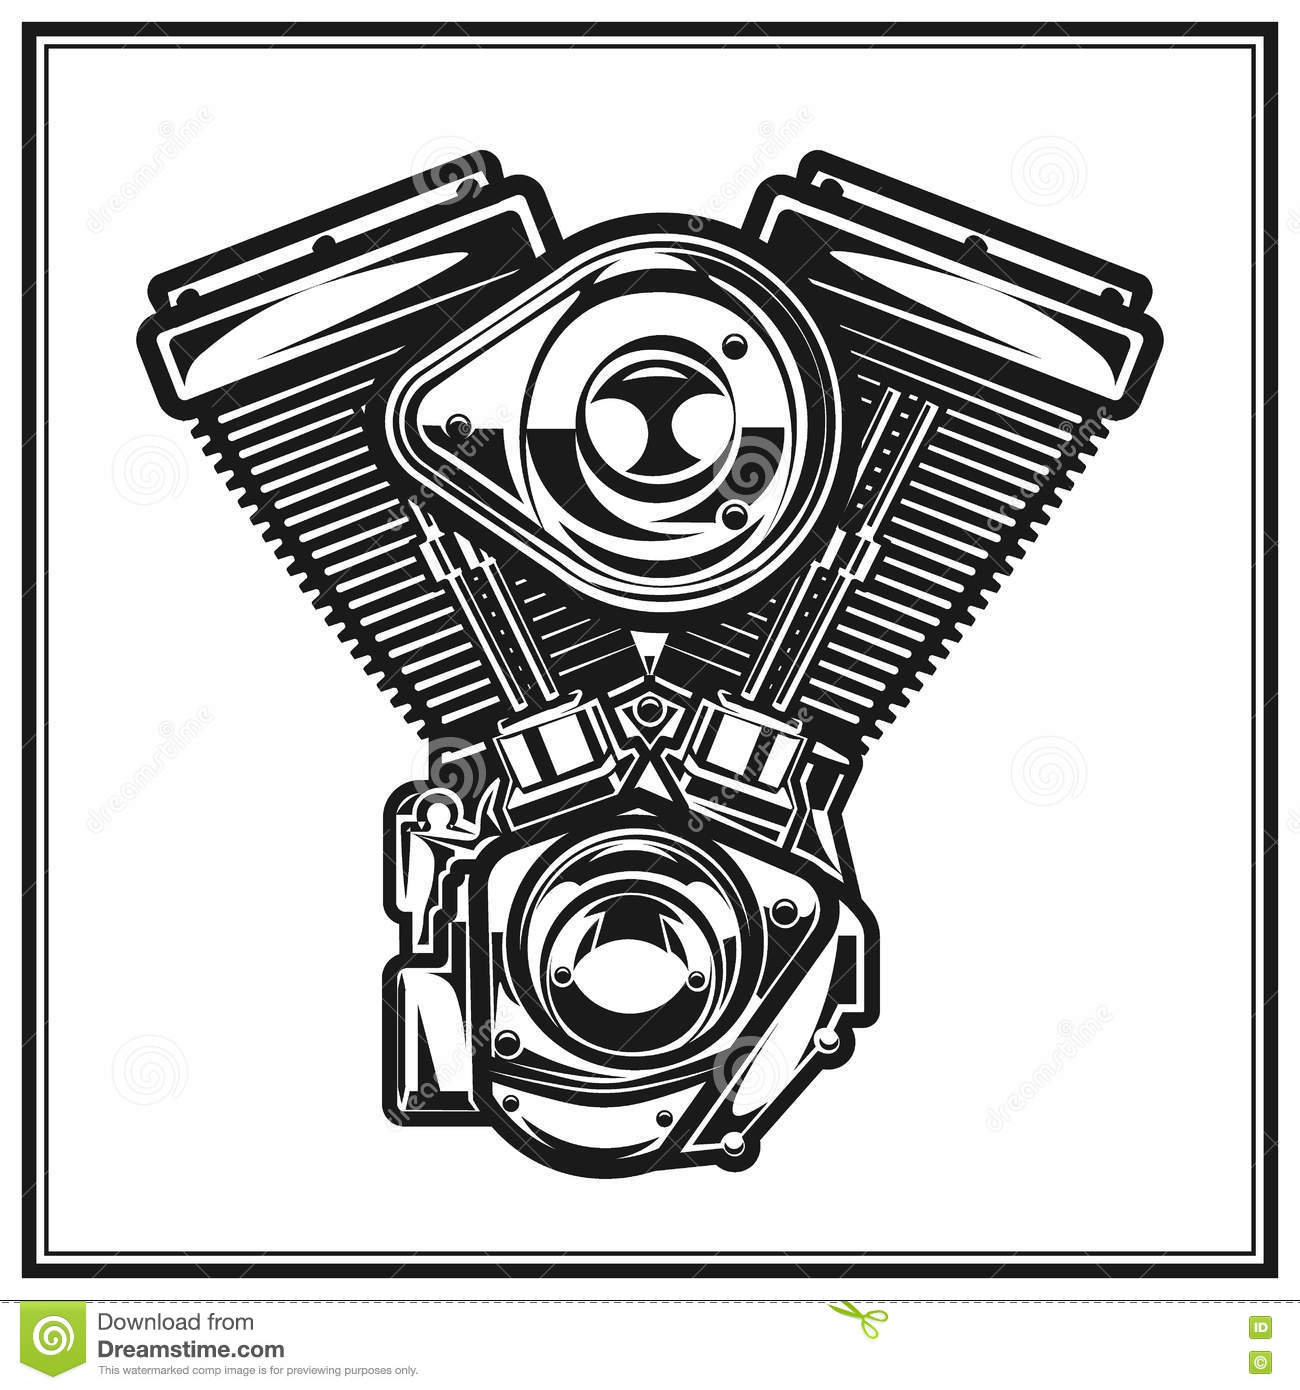 Illustration Of Motorcycle Engine. Stock Vector ...